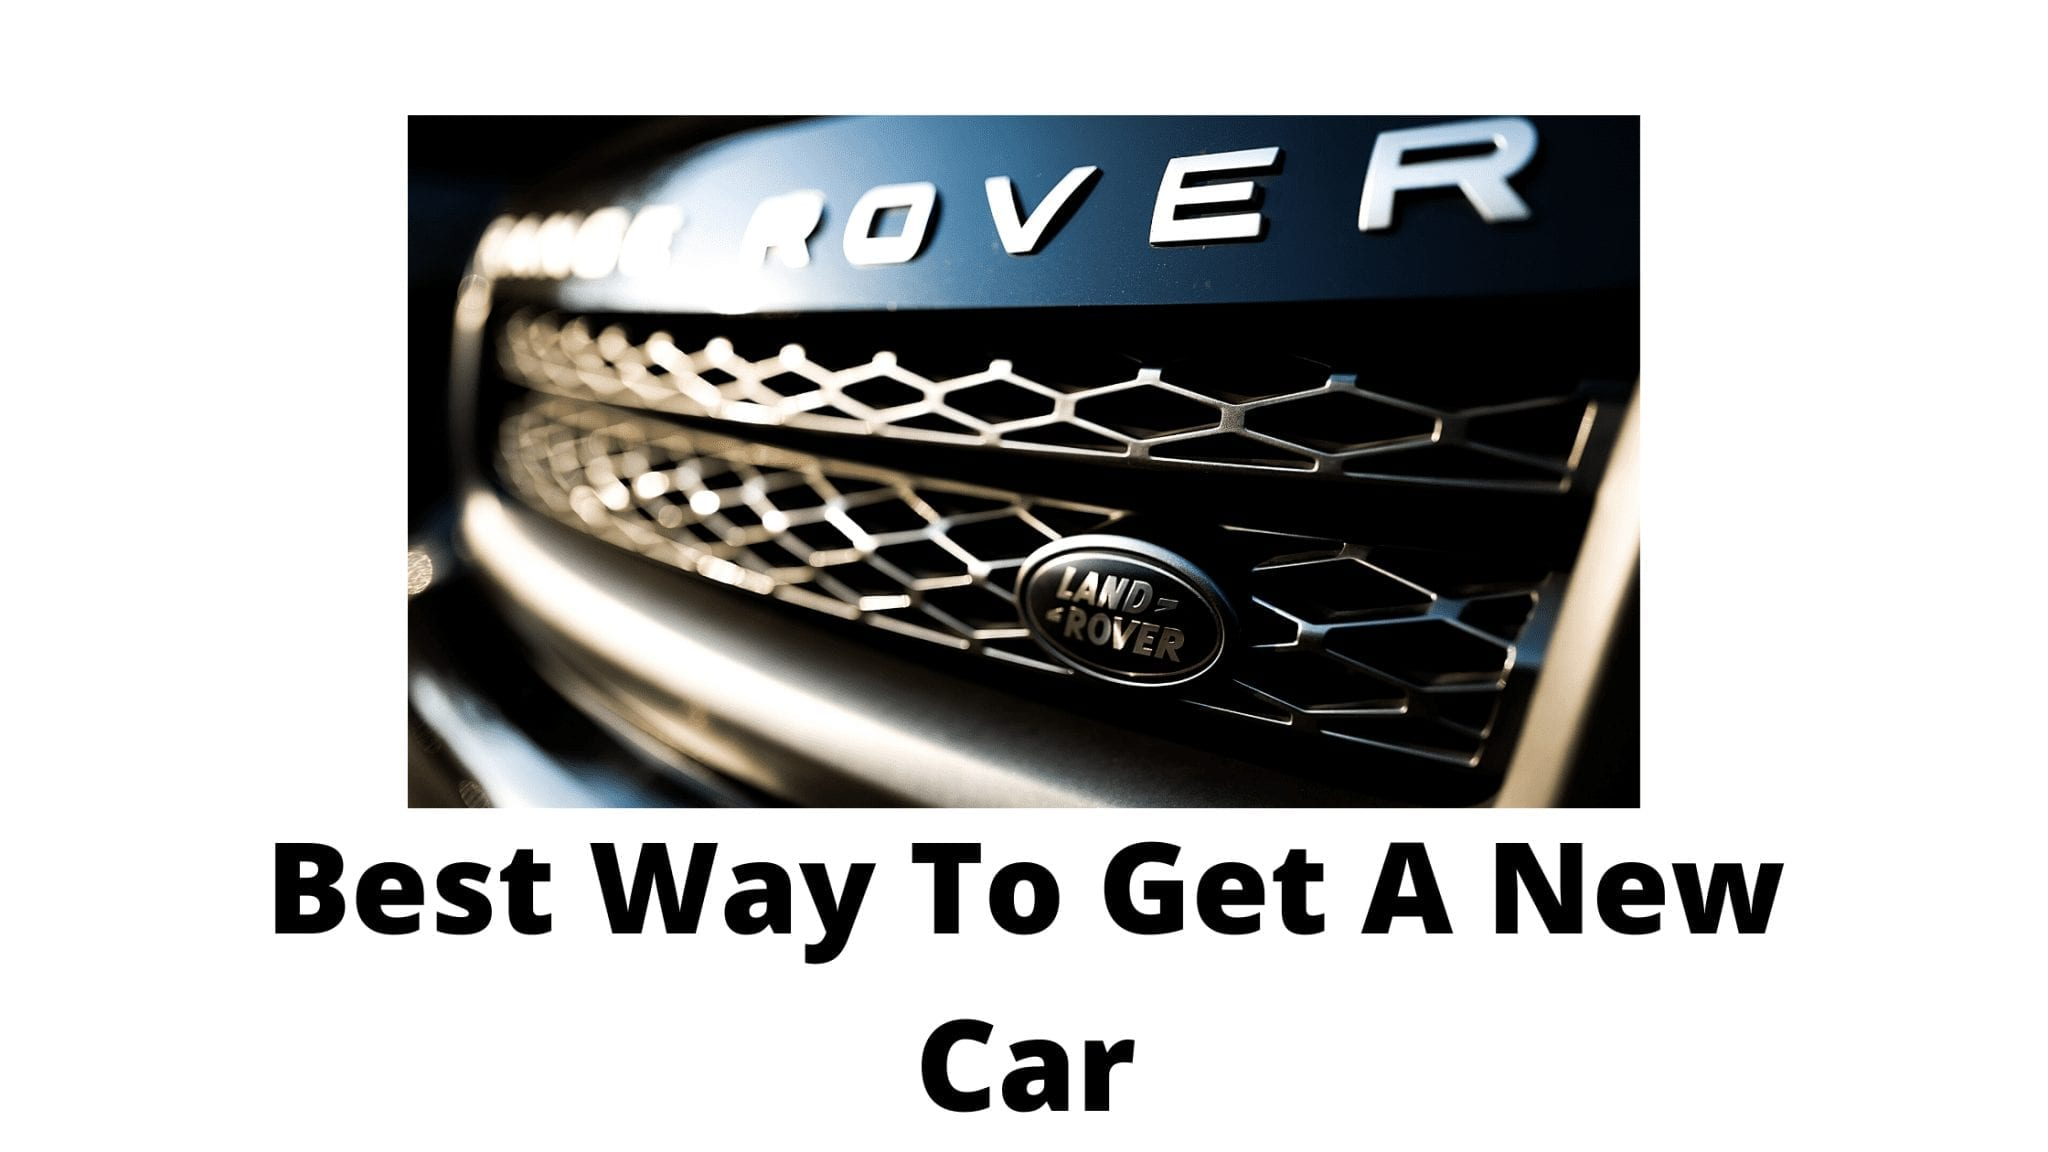 Best Way To Get A New Car